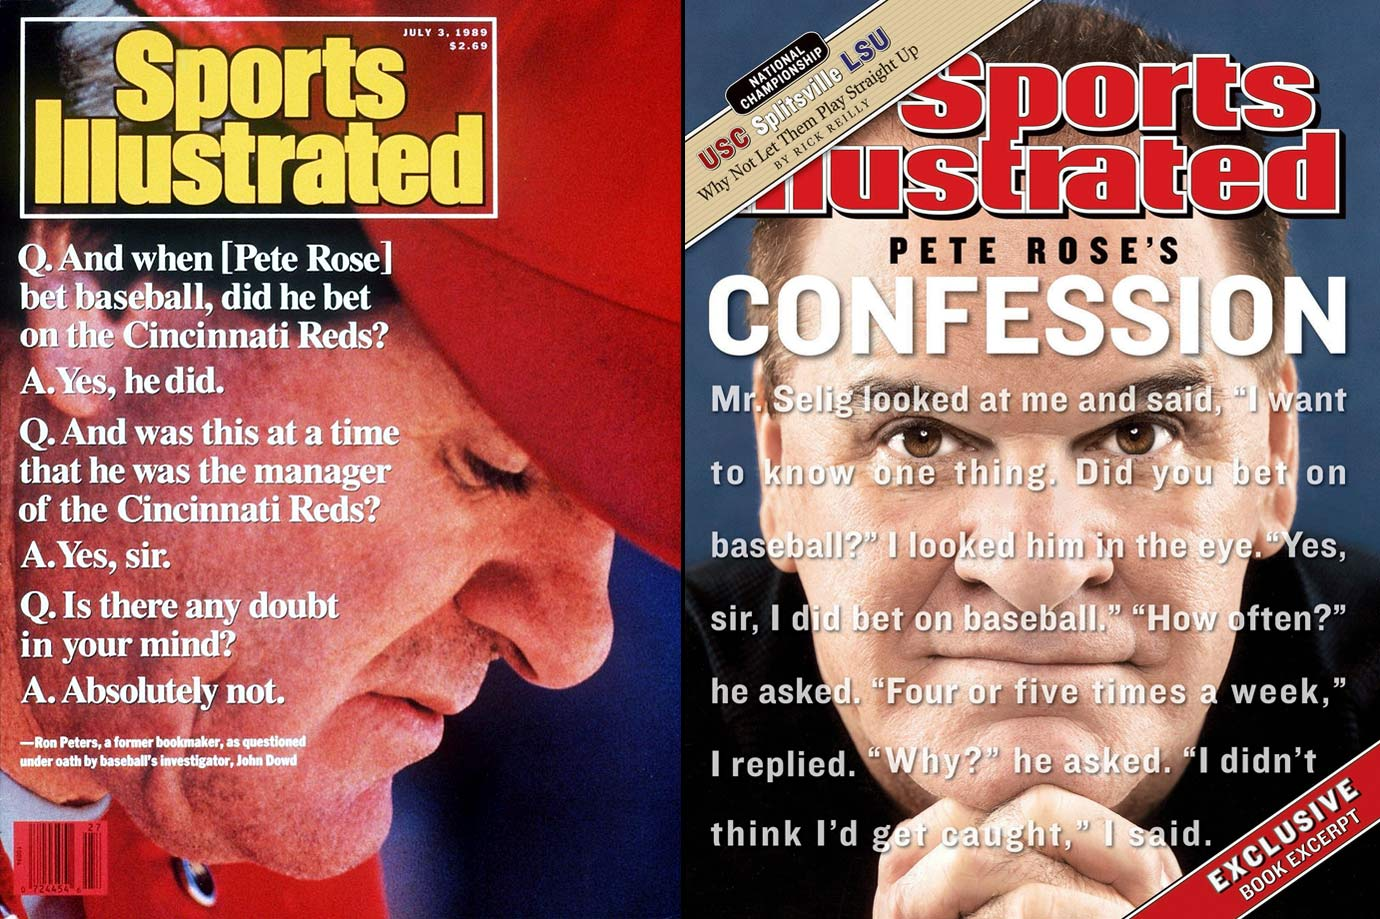 "In 1989, SI first reported the story of Pete Rose's alleged gambling habits, including placing bets on baseball games. The report came after MLB questioned Rose and he denied gambling on the game. Later that year, however, MLB came into possession of documents detailing Rose's bets on baseball, including Cincinnati Reds games while he was their manager. Similarly to the 1919 Black Sox Scandal, Rose was found to have committed the ultimate no-no: betting on the game while having a direct effect on the outcome. The penalty for such an offense? A lifetime ban, one which he served while vehemently denying any wrongdoing until releasing an autobiography in 2004. In the book, the all-time hits king admitted he bet on Reds games ""every night"" as manager."